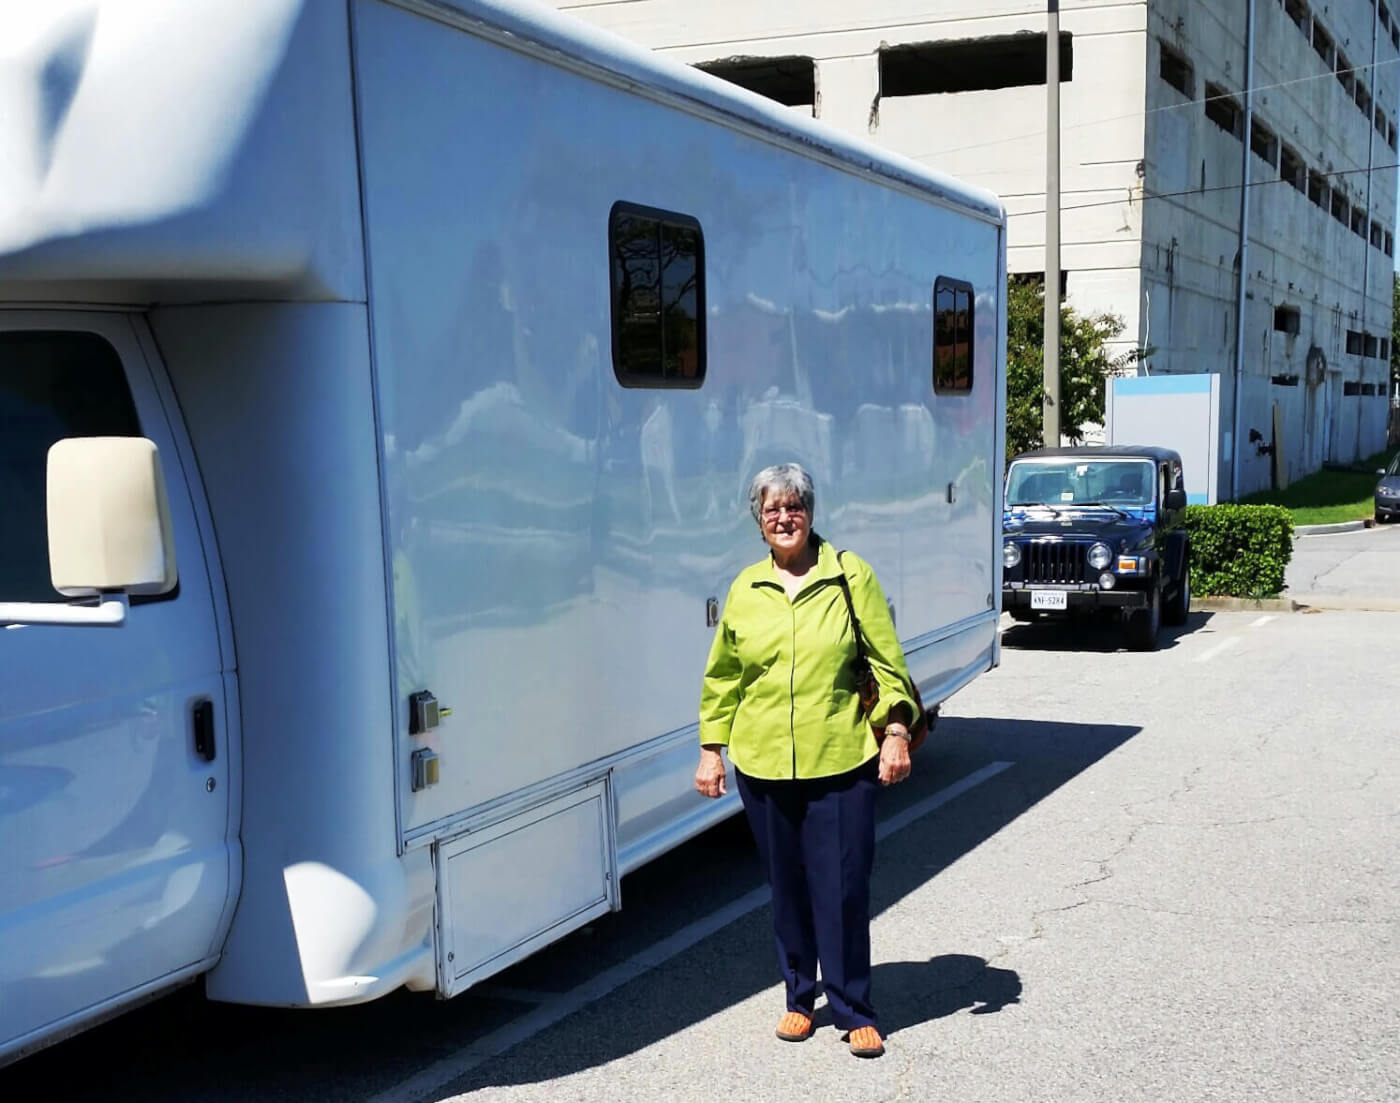 Previously PAWS Was Leasing A Mobile Clinic From The Local Animal Shelter But Group Longed To Have Call Its Own So That It Could Expand